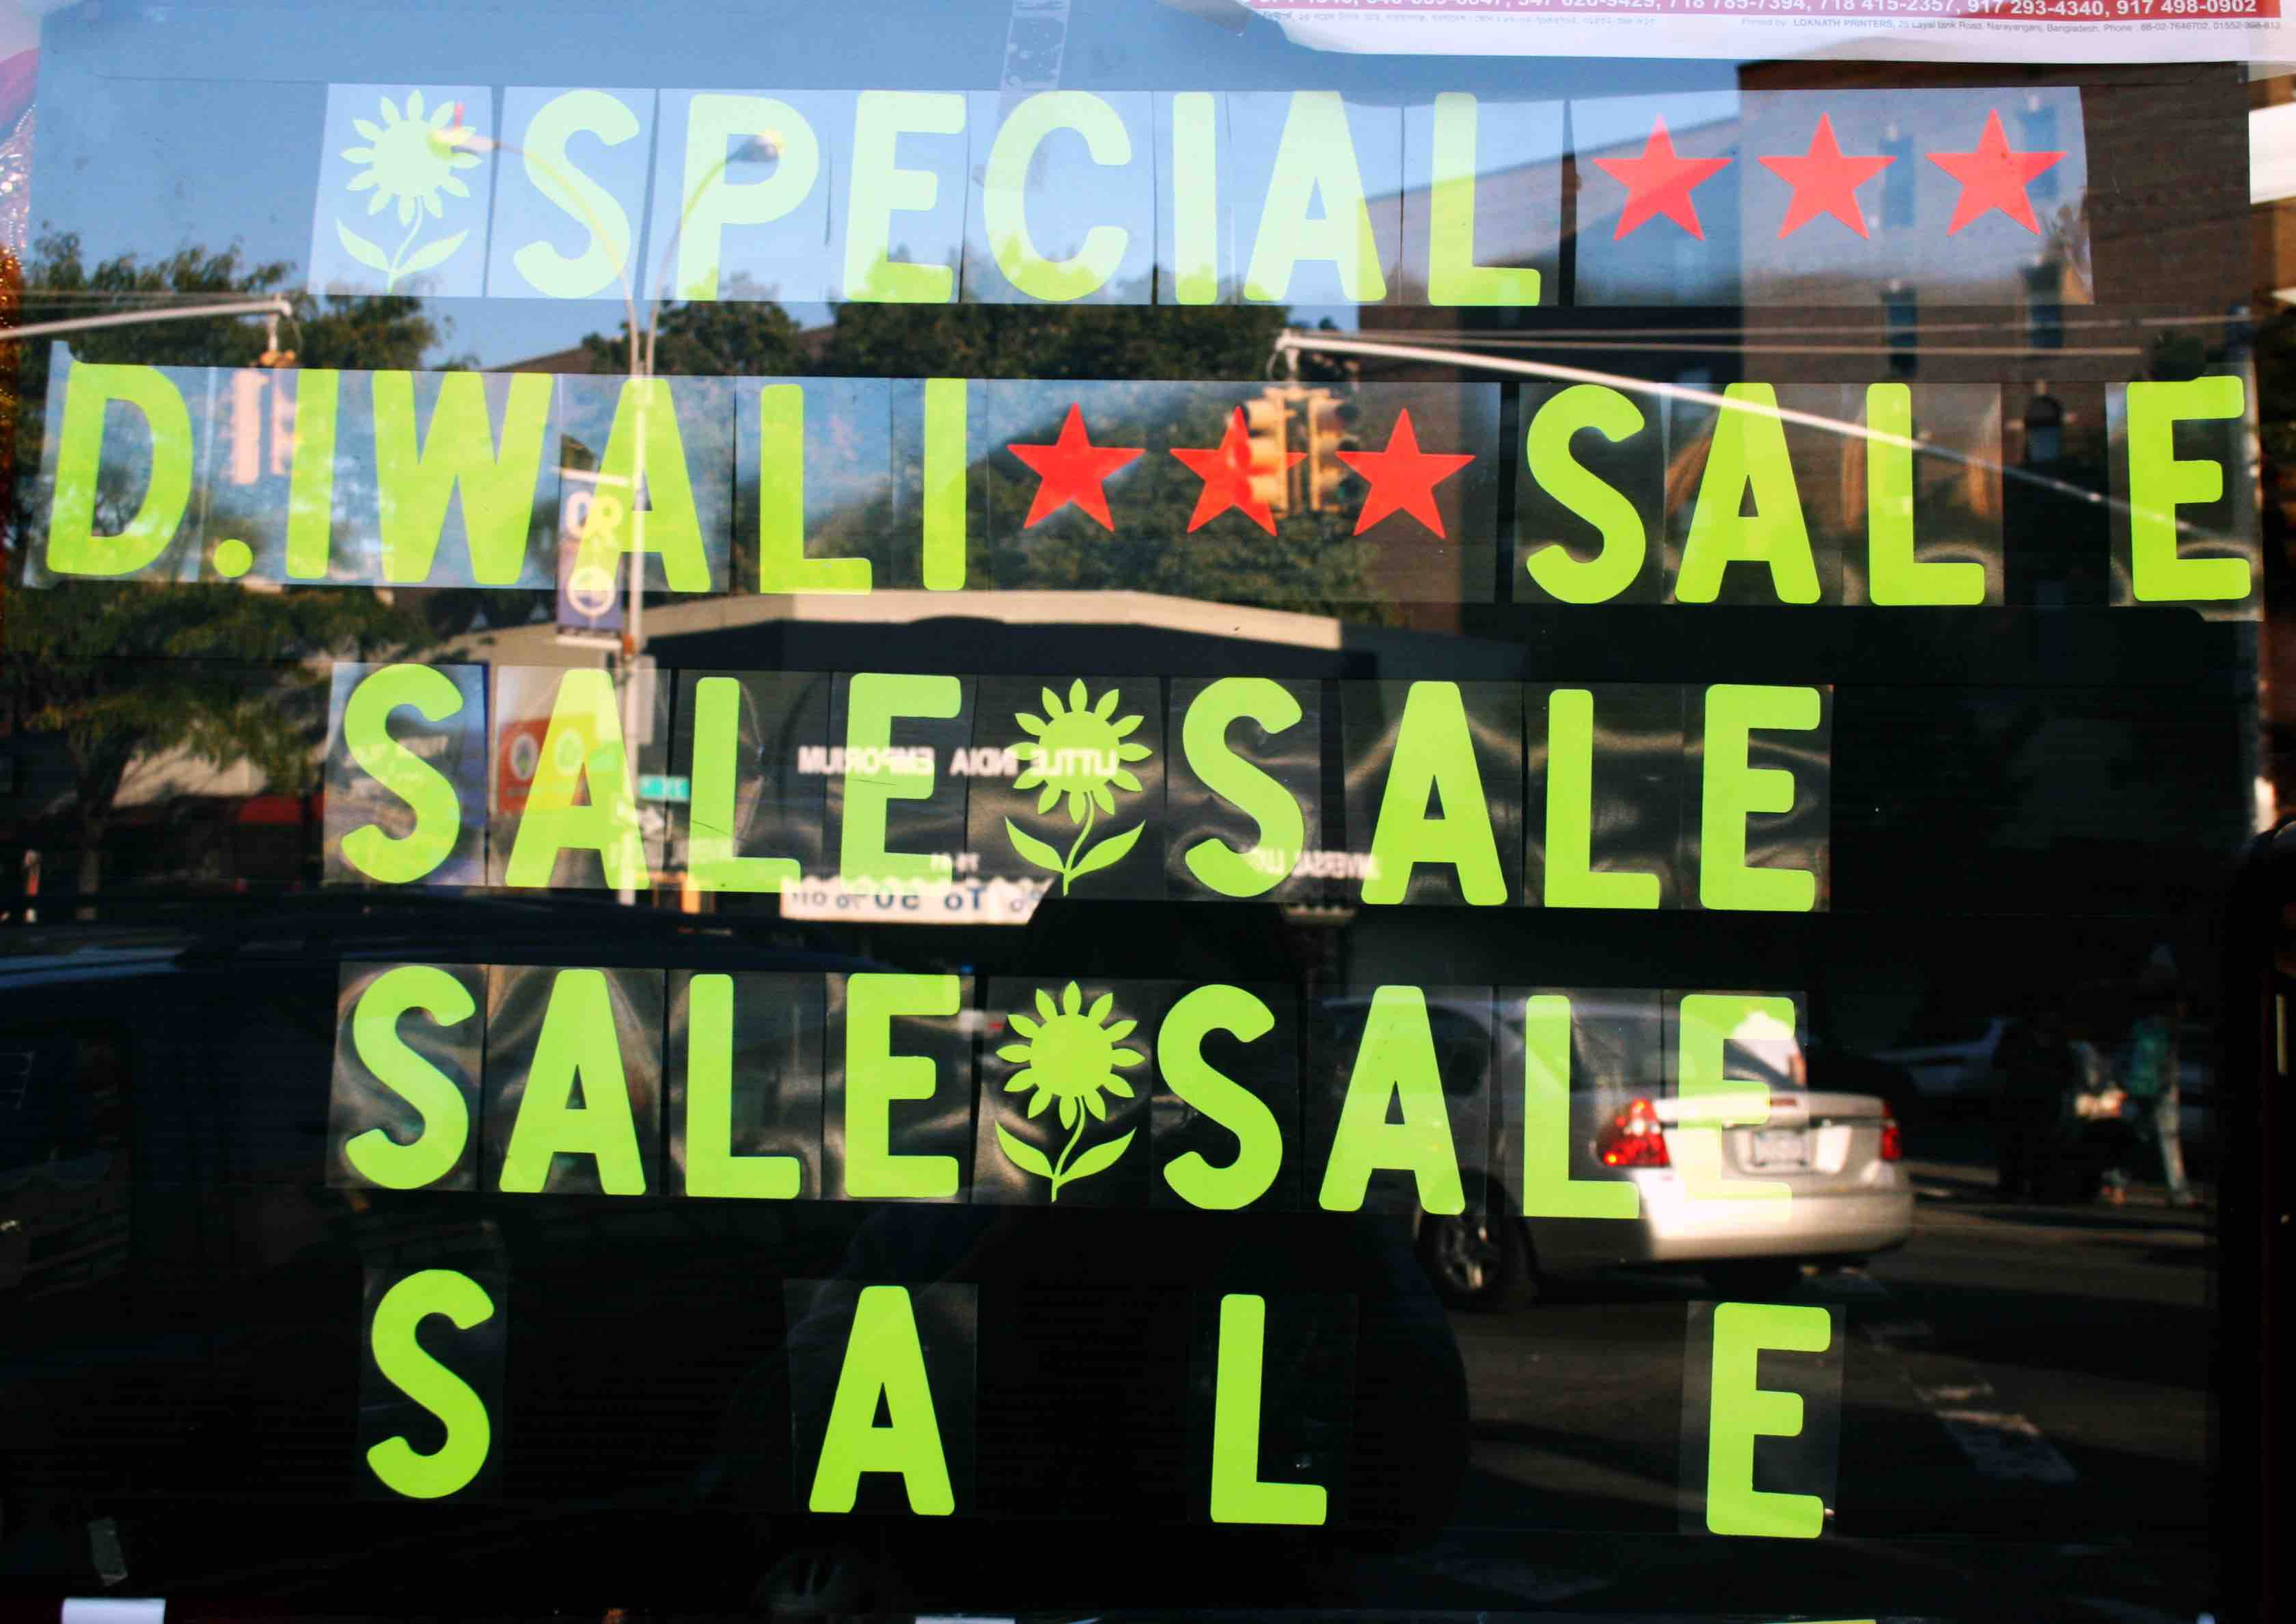 https://upload.wikimedia.org/wikipedia/commons/a/ae/Shopping_Season_Diwali_Sale_Signs.jpg